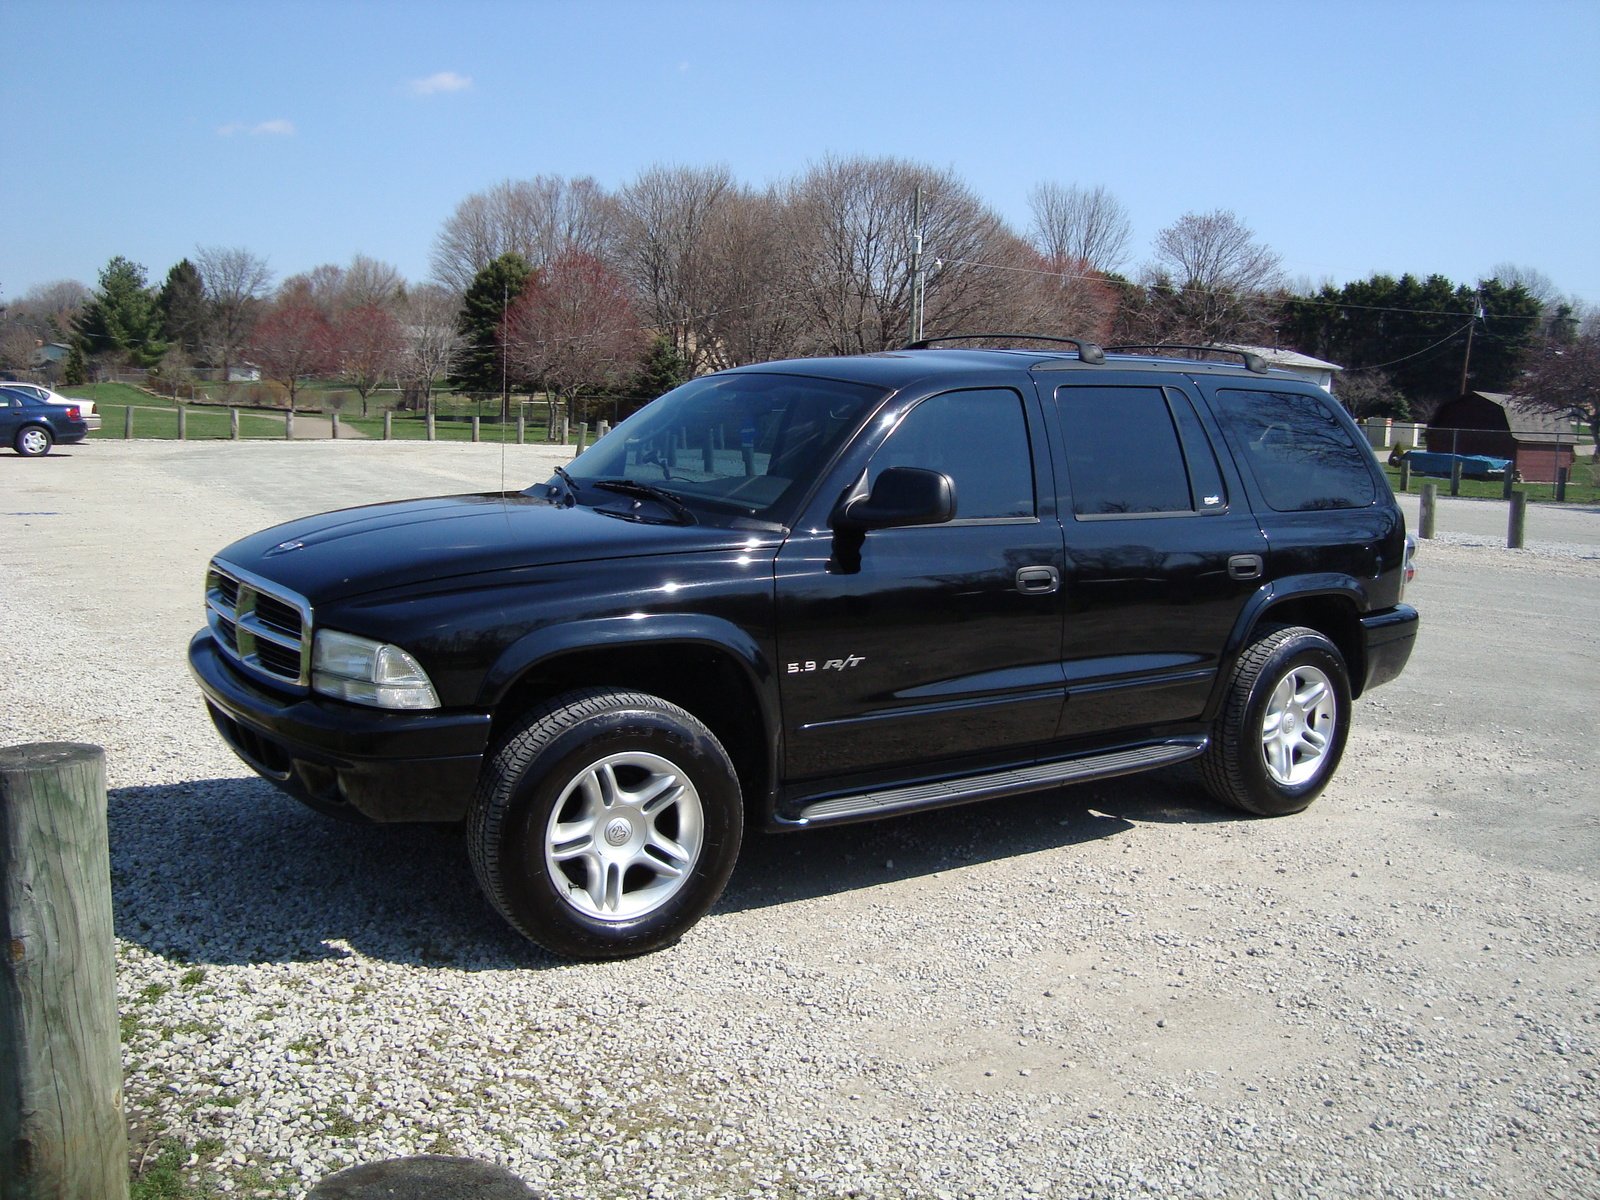 Dodge Durango Reviews >> 1999 Dodge Durango Rt - Auto Express